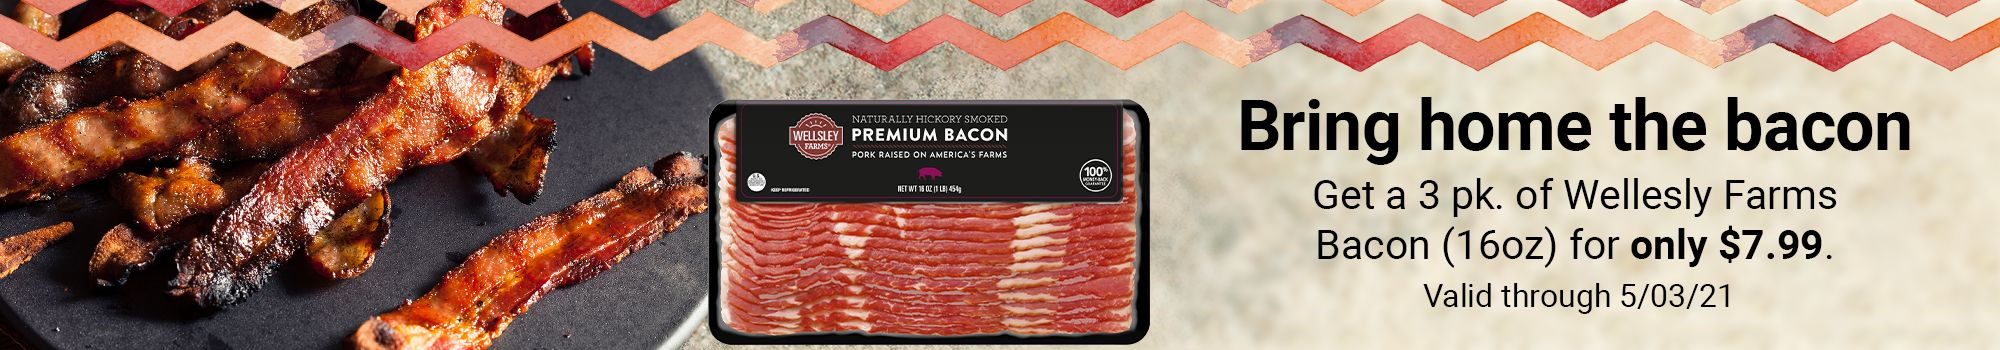 Bring home the bacon. Get a 3 pack of Wellesly Farms Bacon 16oz for only $7.99. Valid through 5/03/21